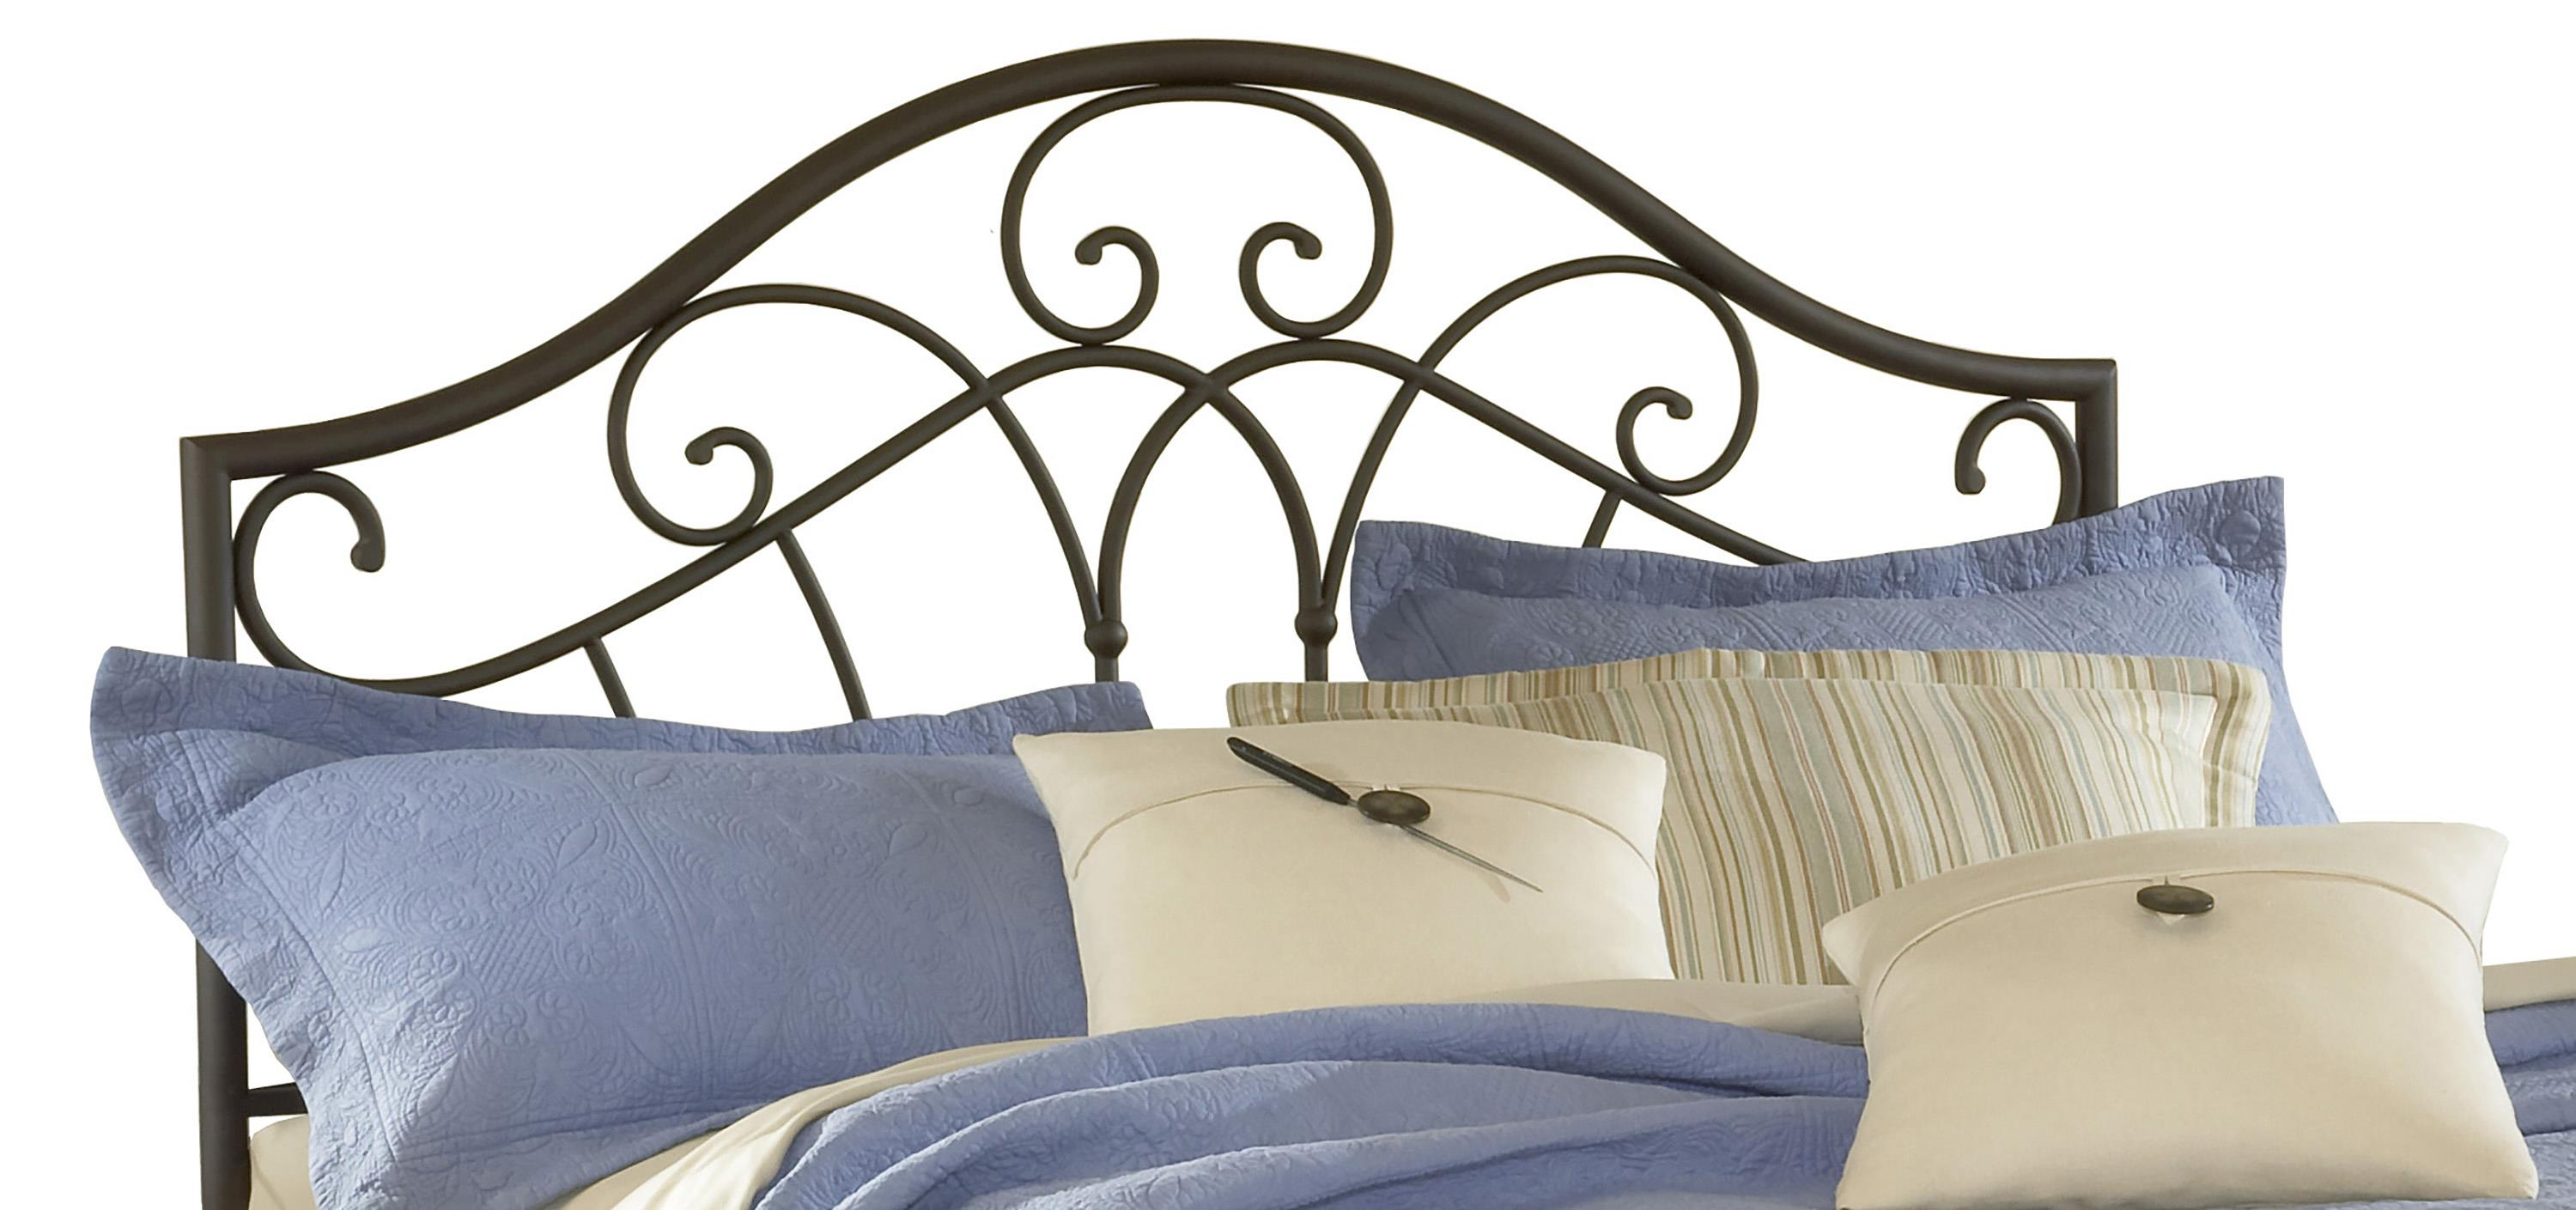 Hillsdale Metal Beds Josephine King Headboard with Rails - Item Number: 1544HKR